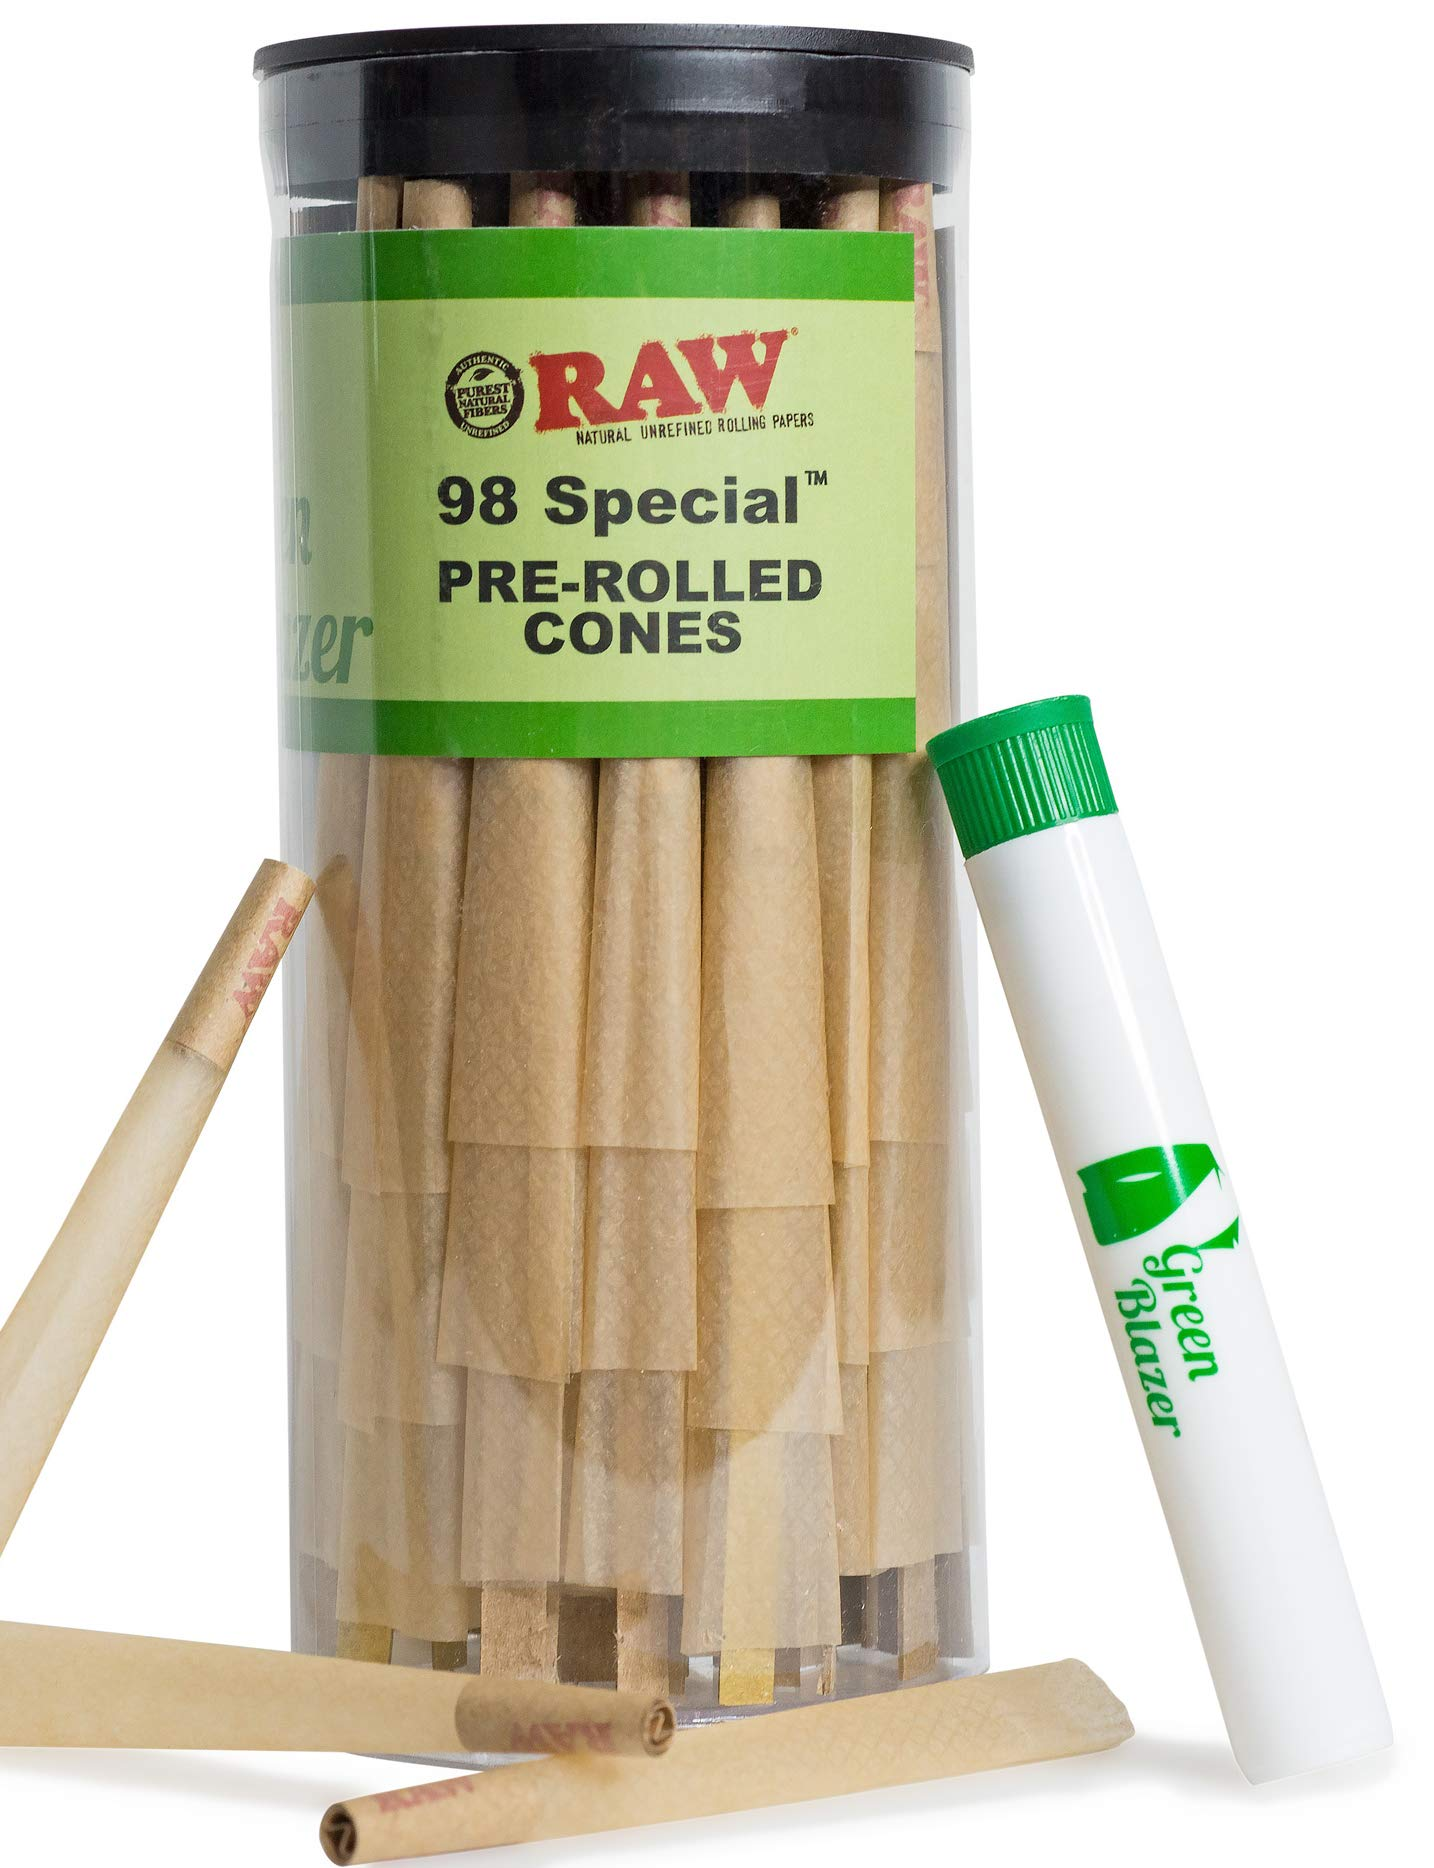 RAW Pre Rolled Cones 98 Special: 100 Pack |Rolling Papers with Filter Tips | Clean & Slow Burning RAW Cone | Bonus Doob Tube Included